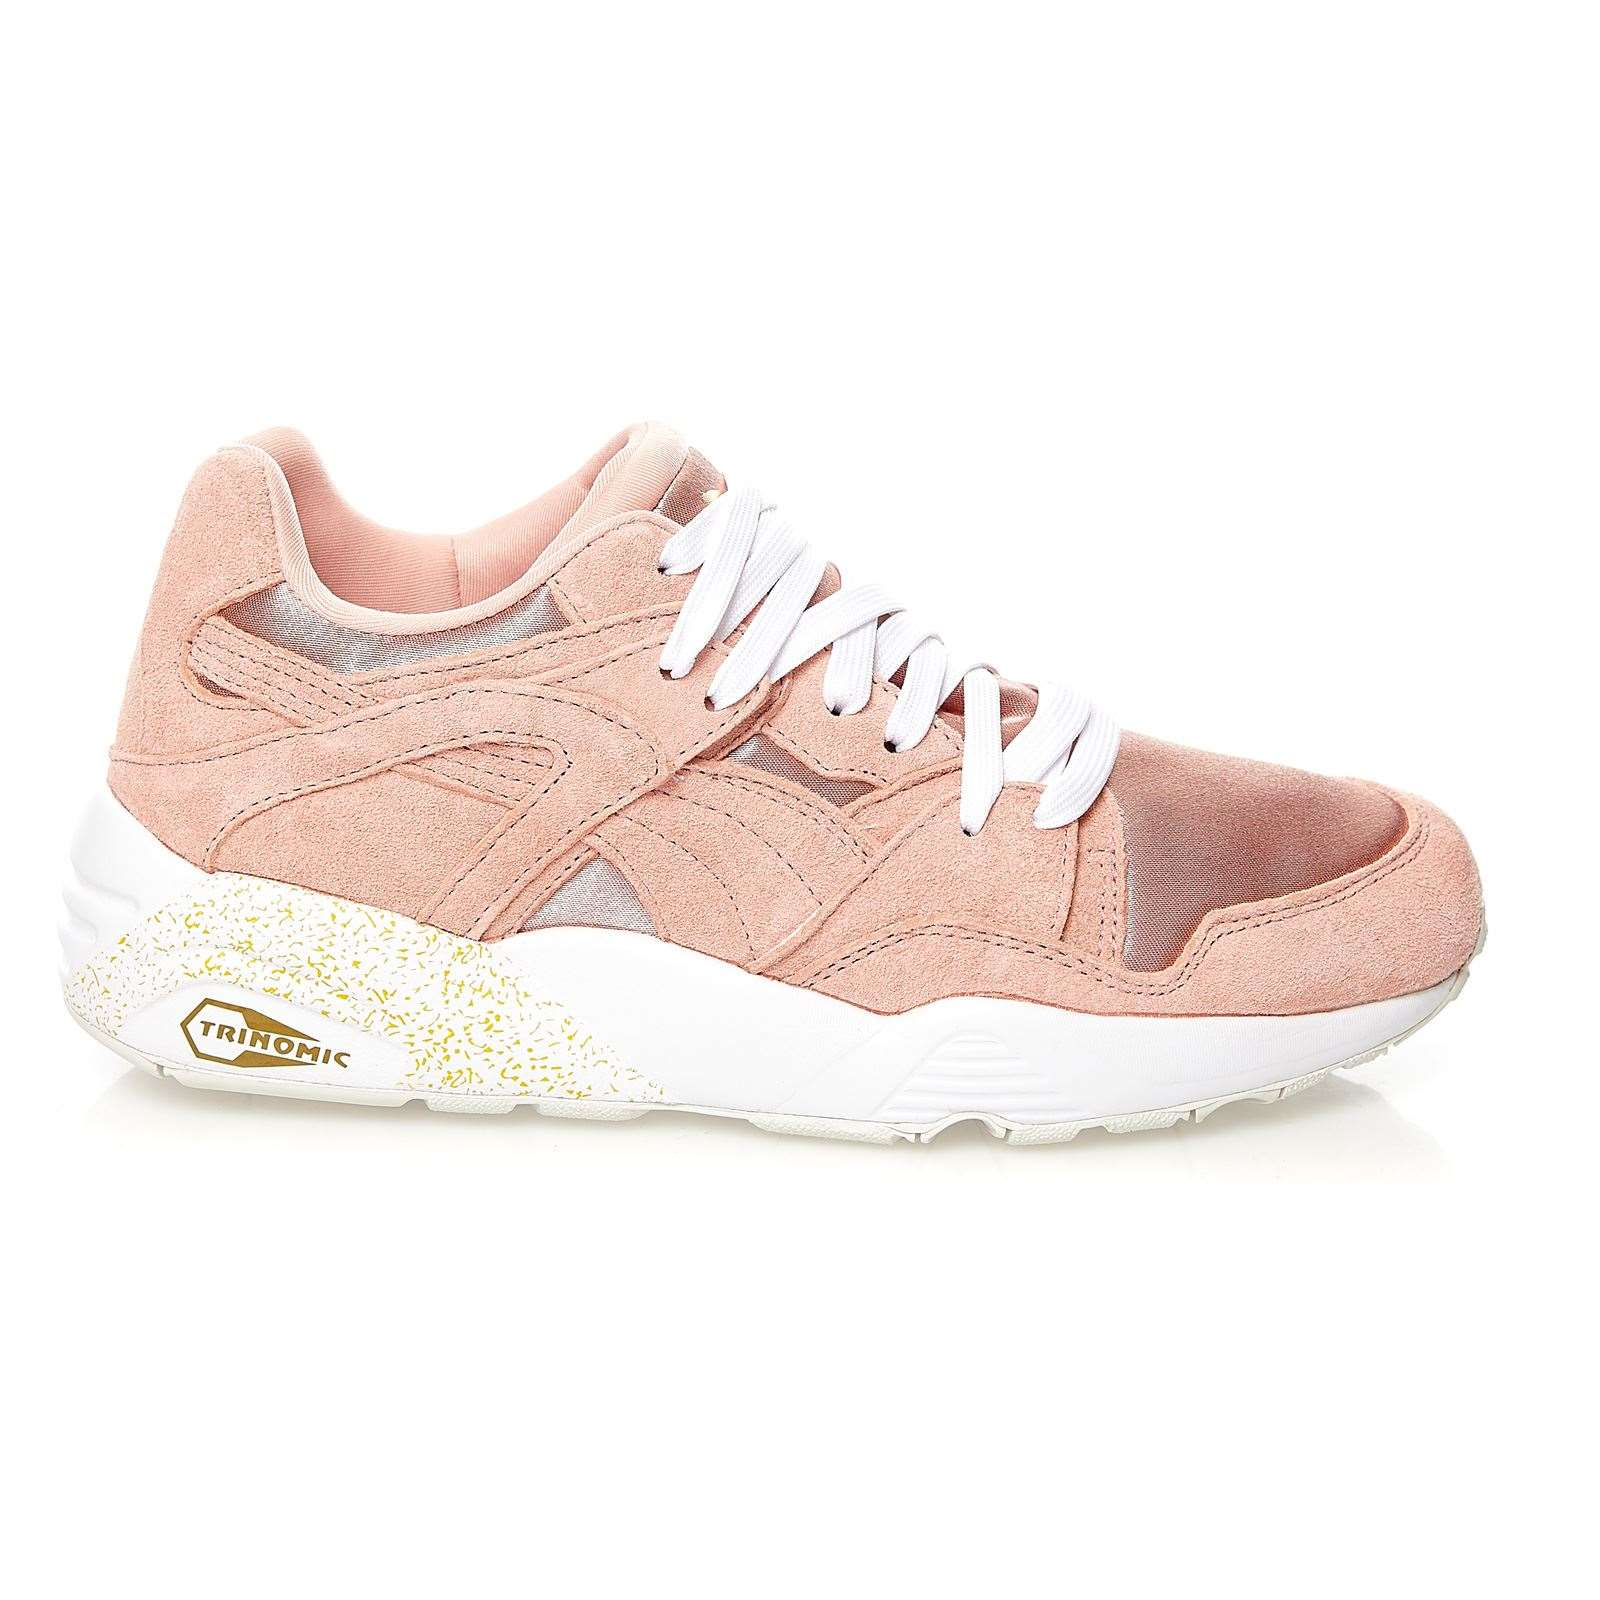 best authentic great quality cheap price clearance puma trinomic rose 8ee9e 38480